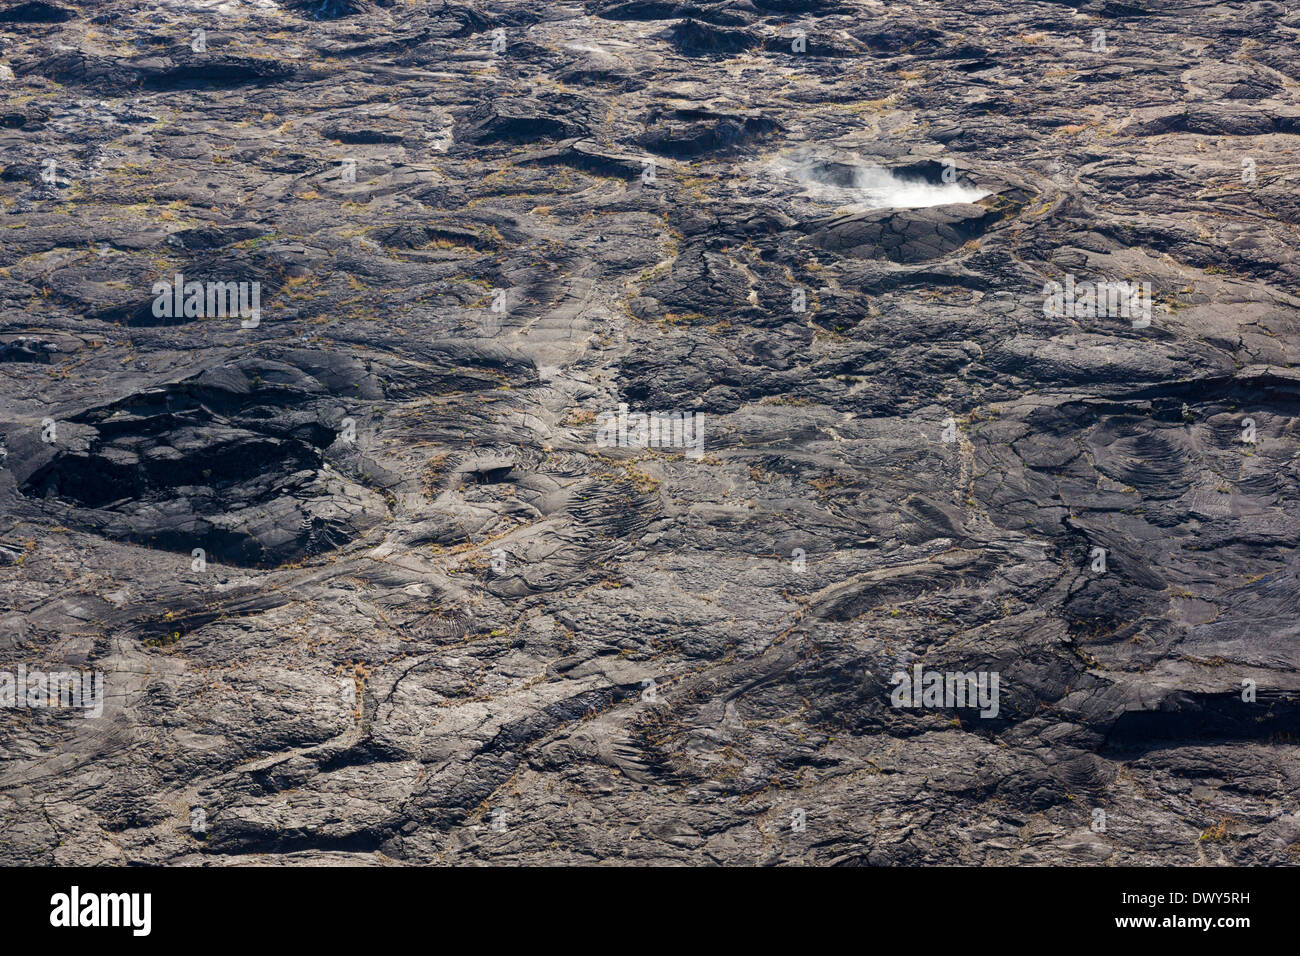 Kilauea Caldera, Hawaii Volcanoes National Park, Big Island, Hawaii, USA. - Stock Image